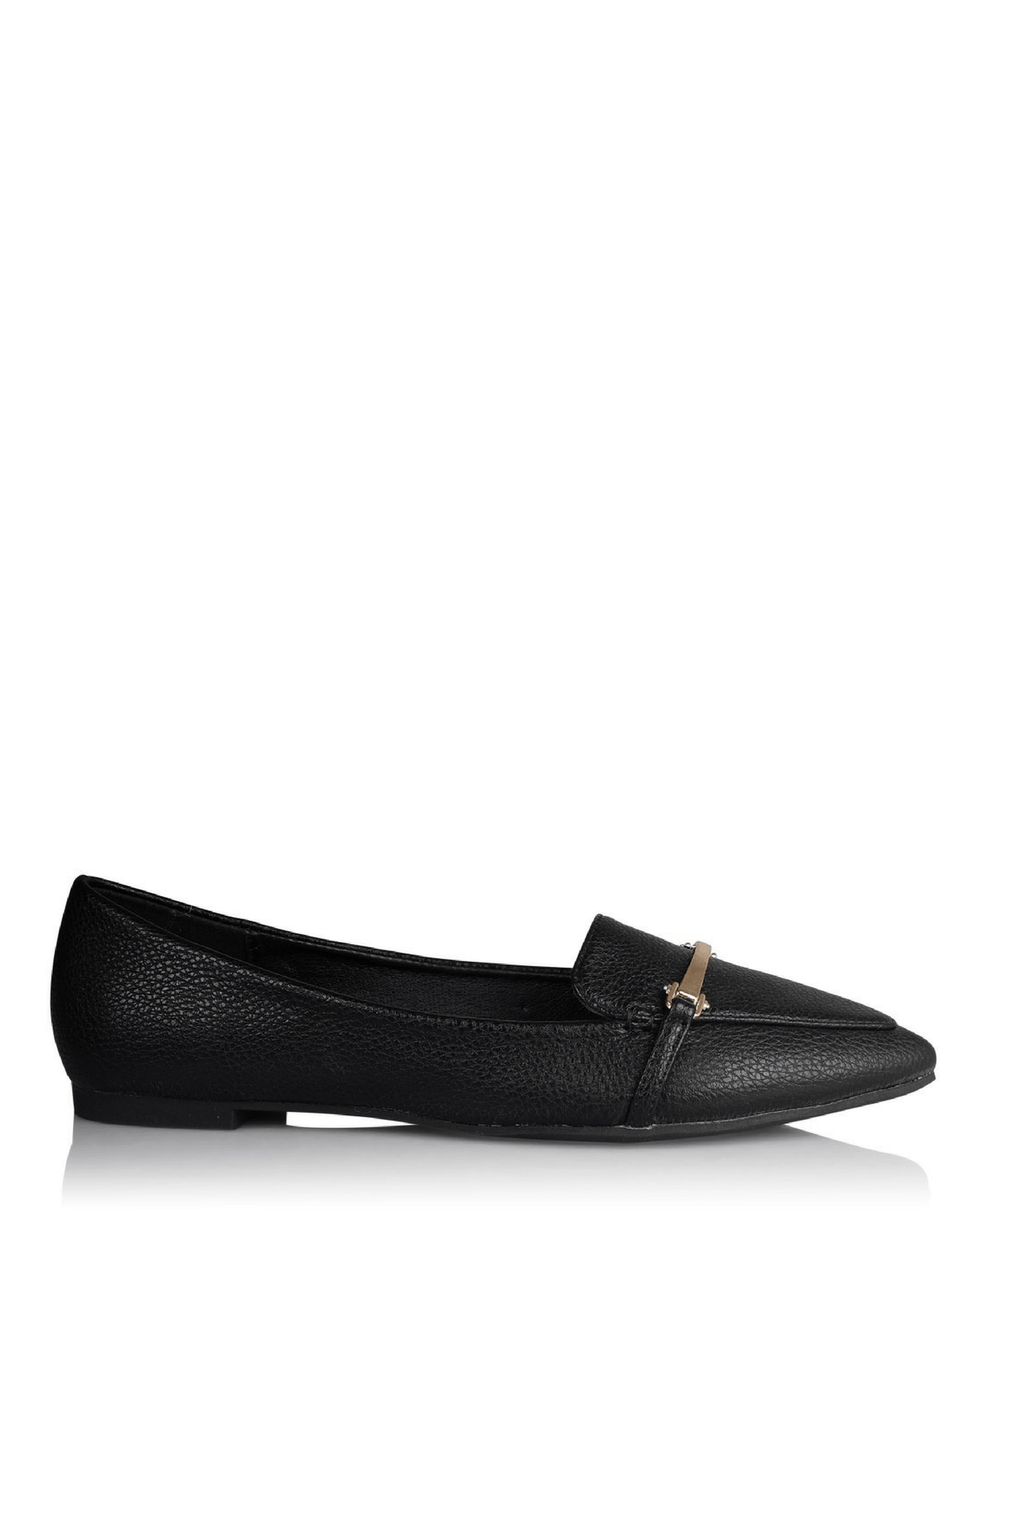 Vallie Black Pebble Flats- Billini Shoes